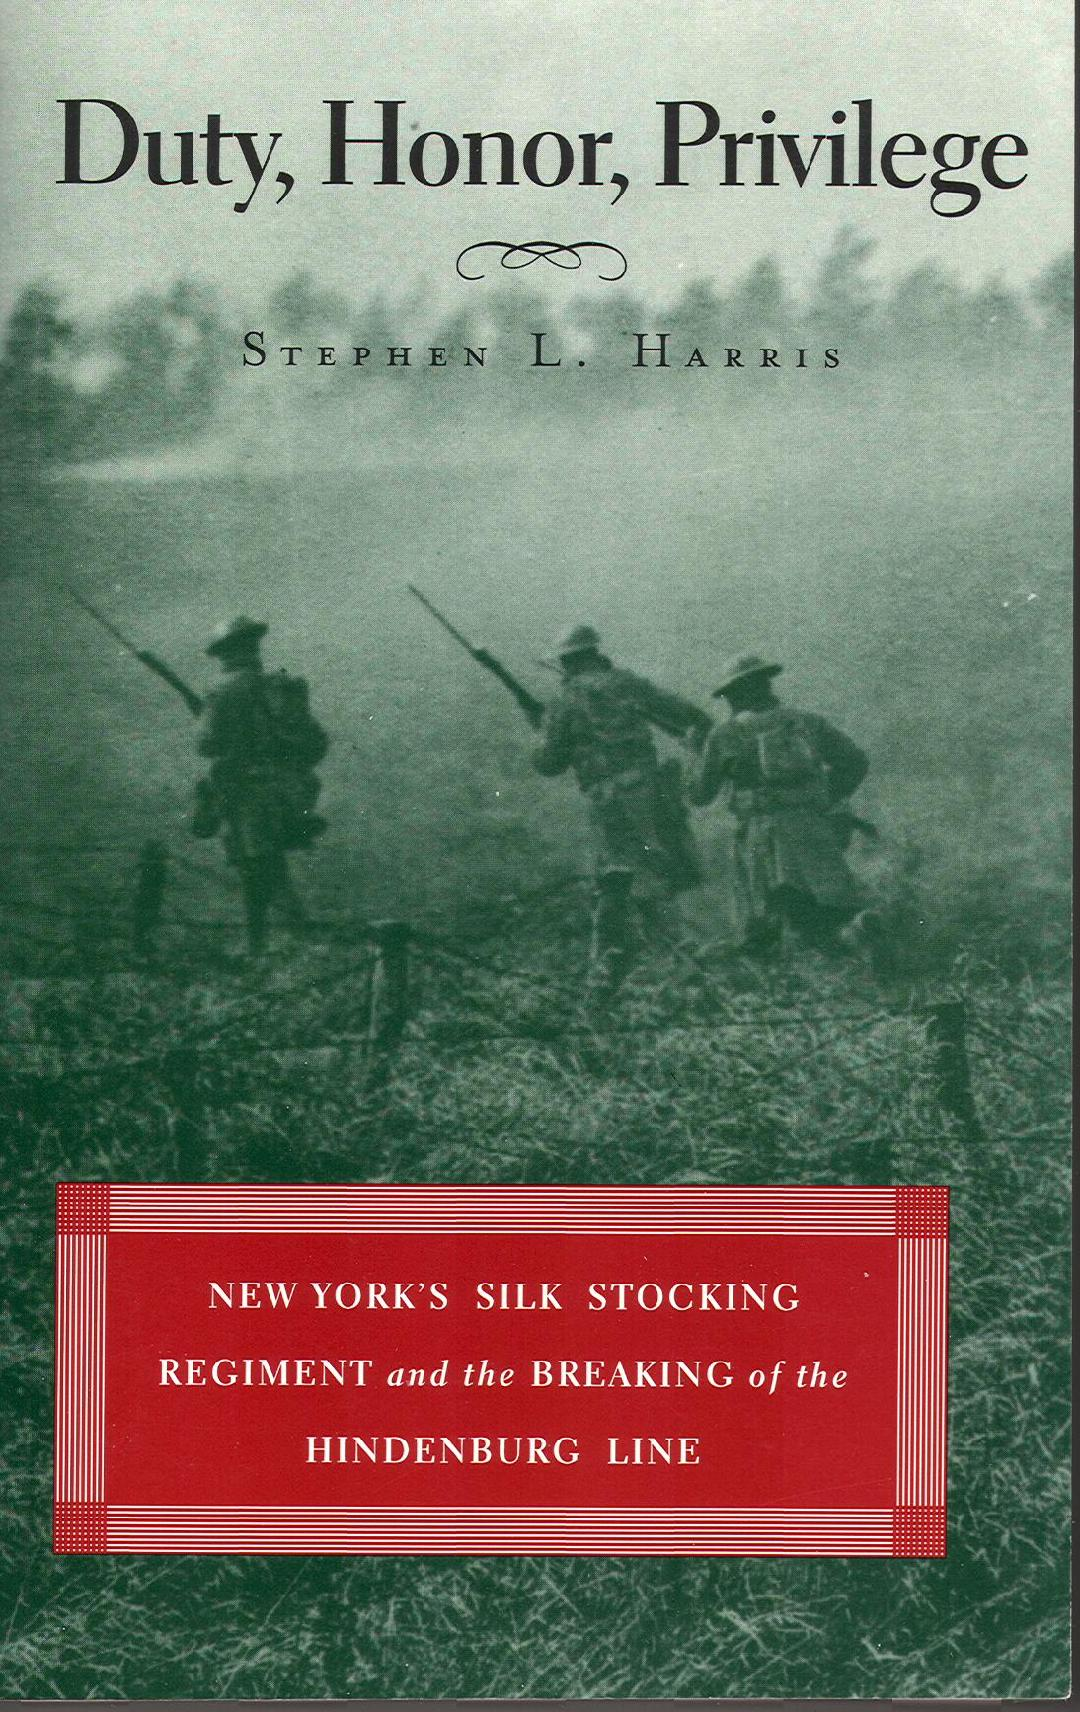 Category: <span>Stephen L. Harris</span>